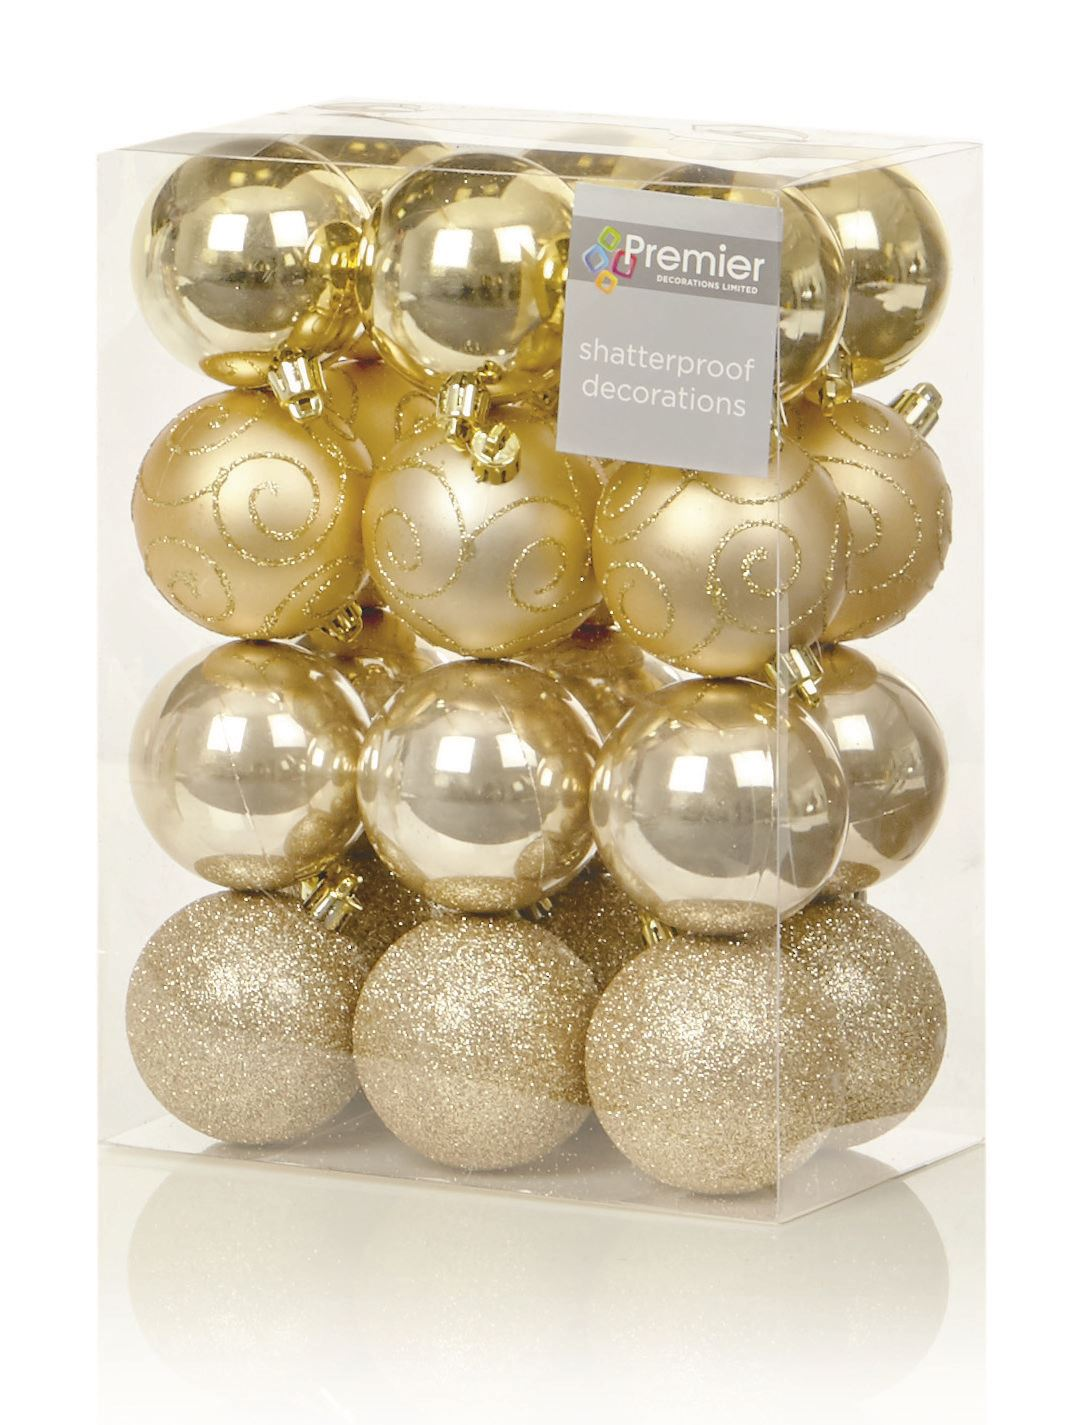 24 X CHRISTMAS TREE BAUBLES XMAS DECORATION BAUBLE 60MM SHATTERPROOF GLITTER